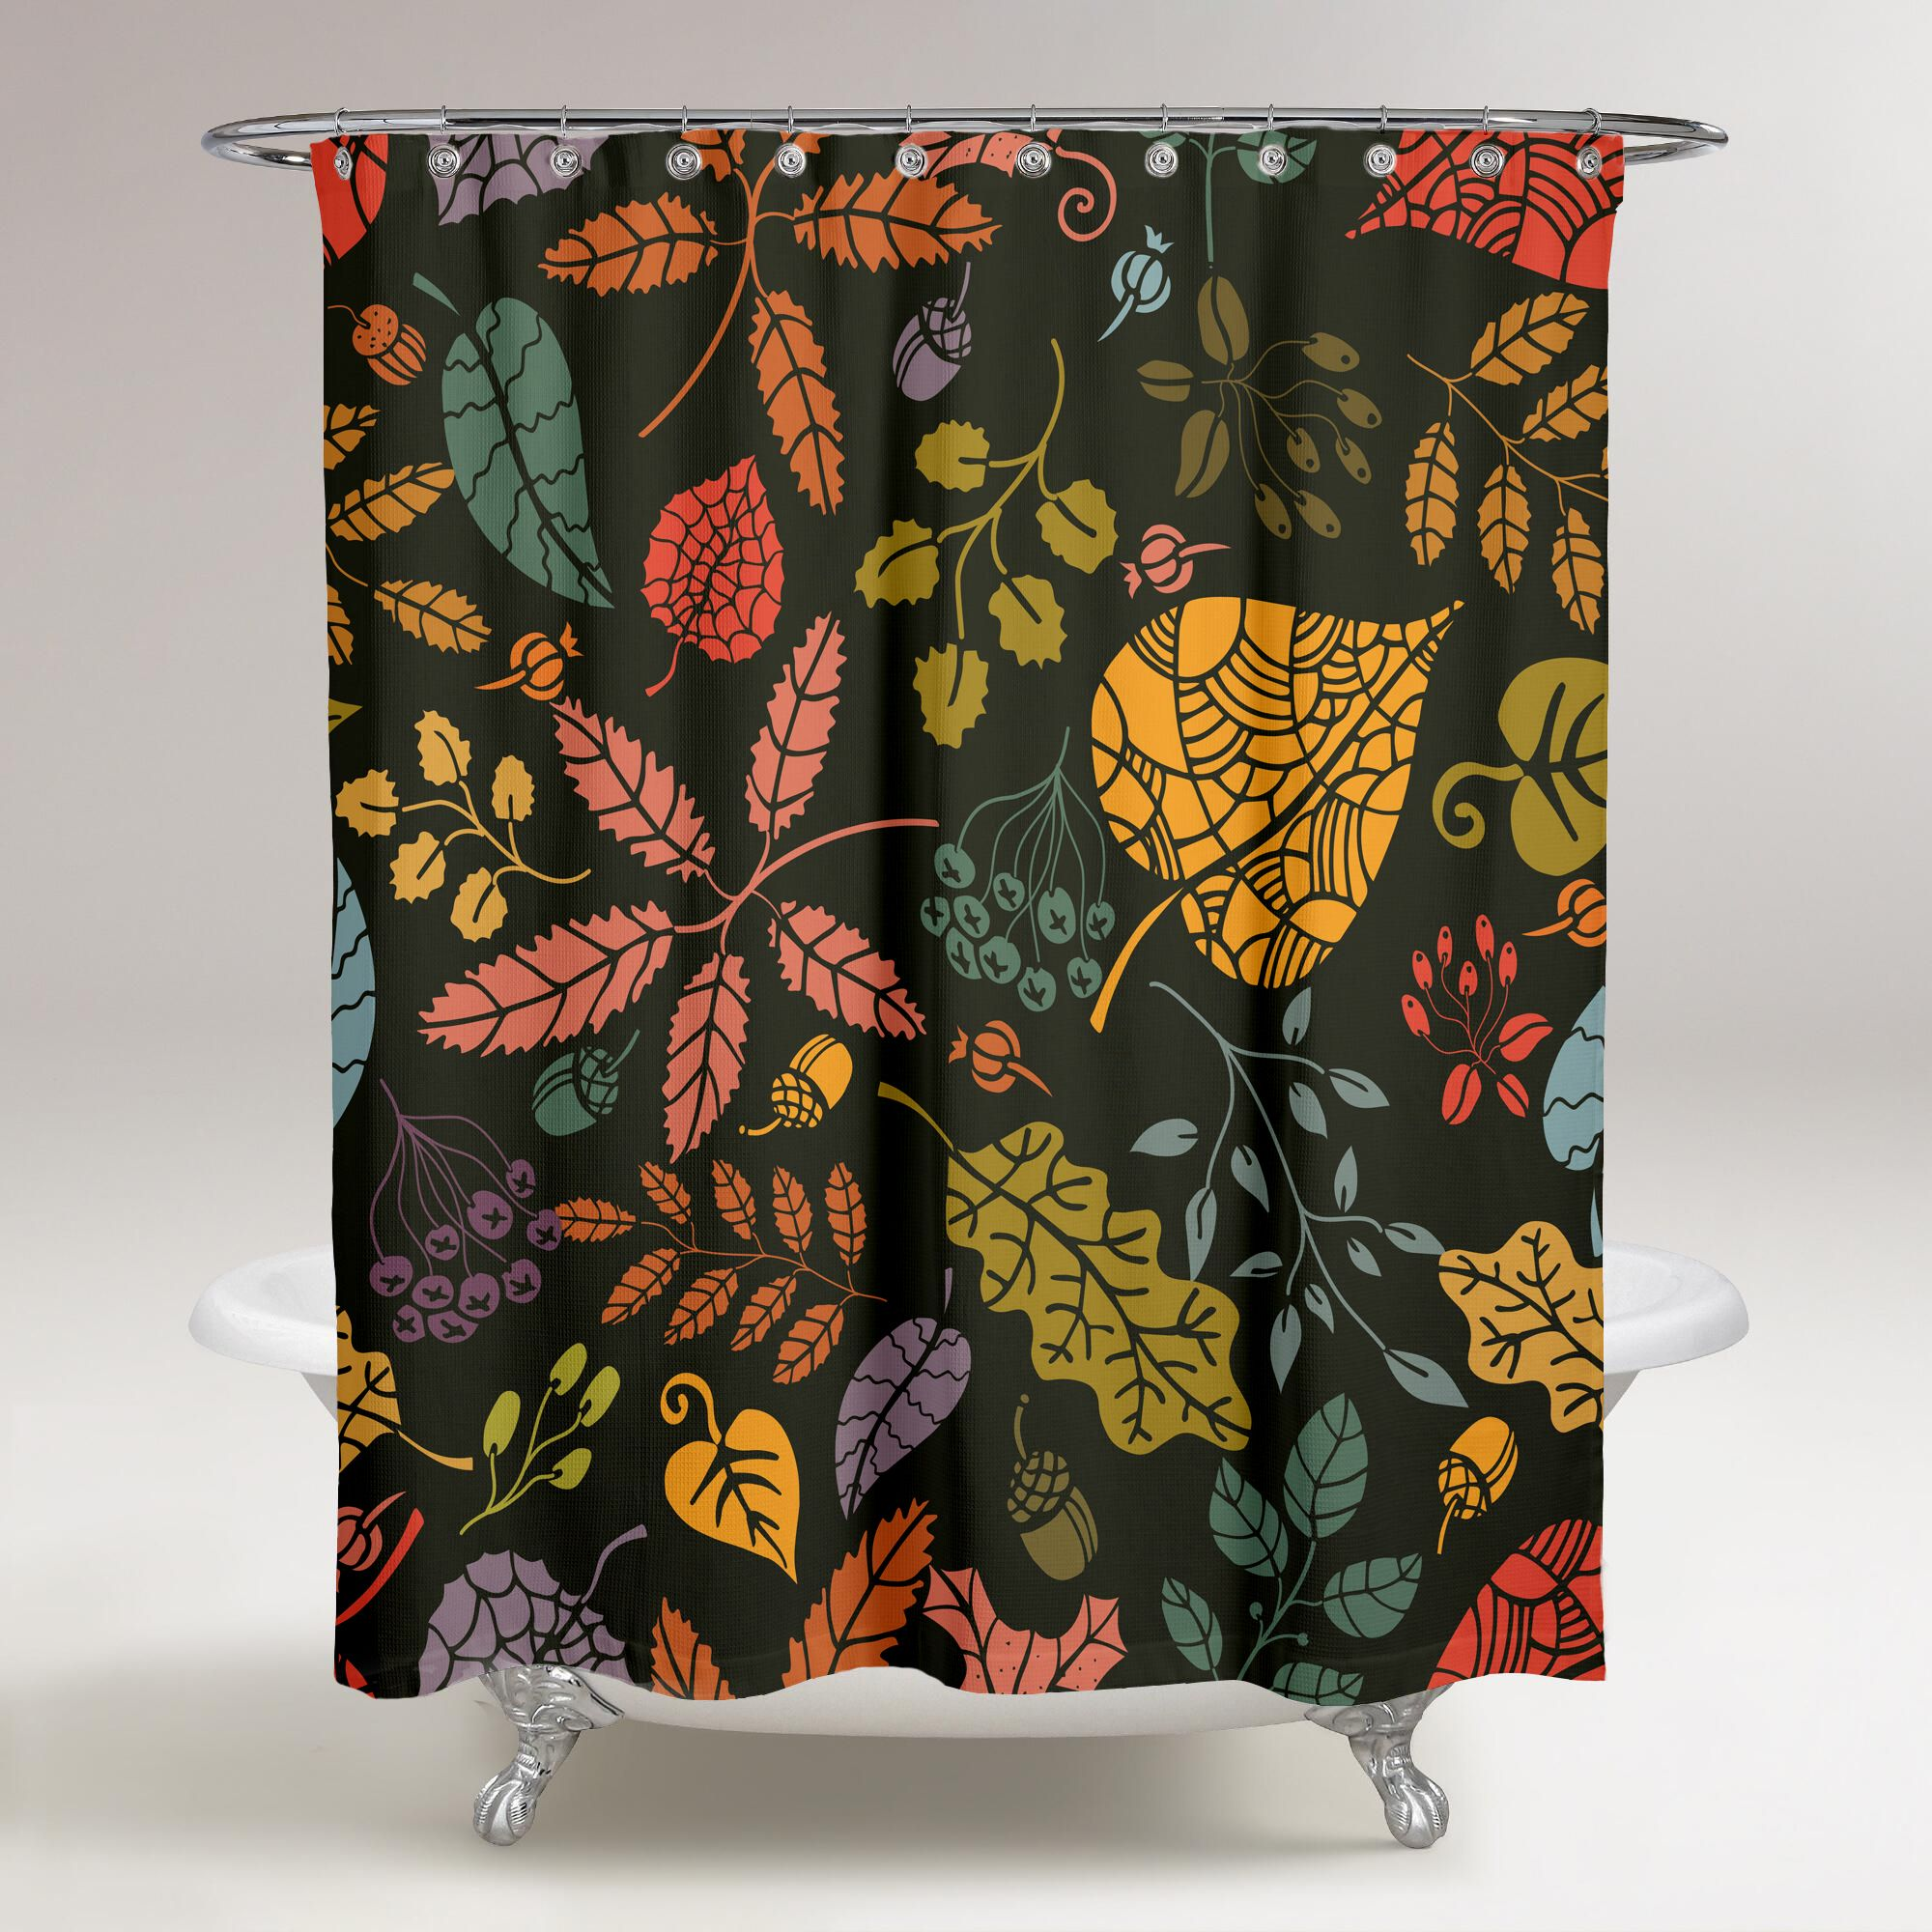 Set the theme of bathroom with a personalized shower curtain each